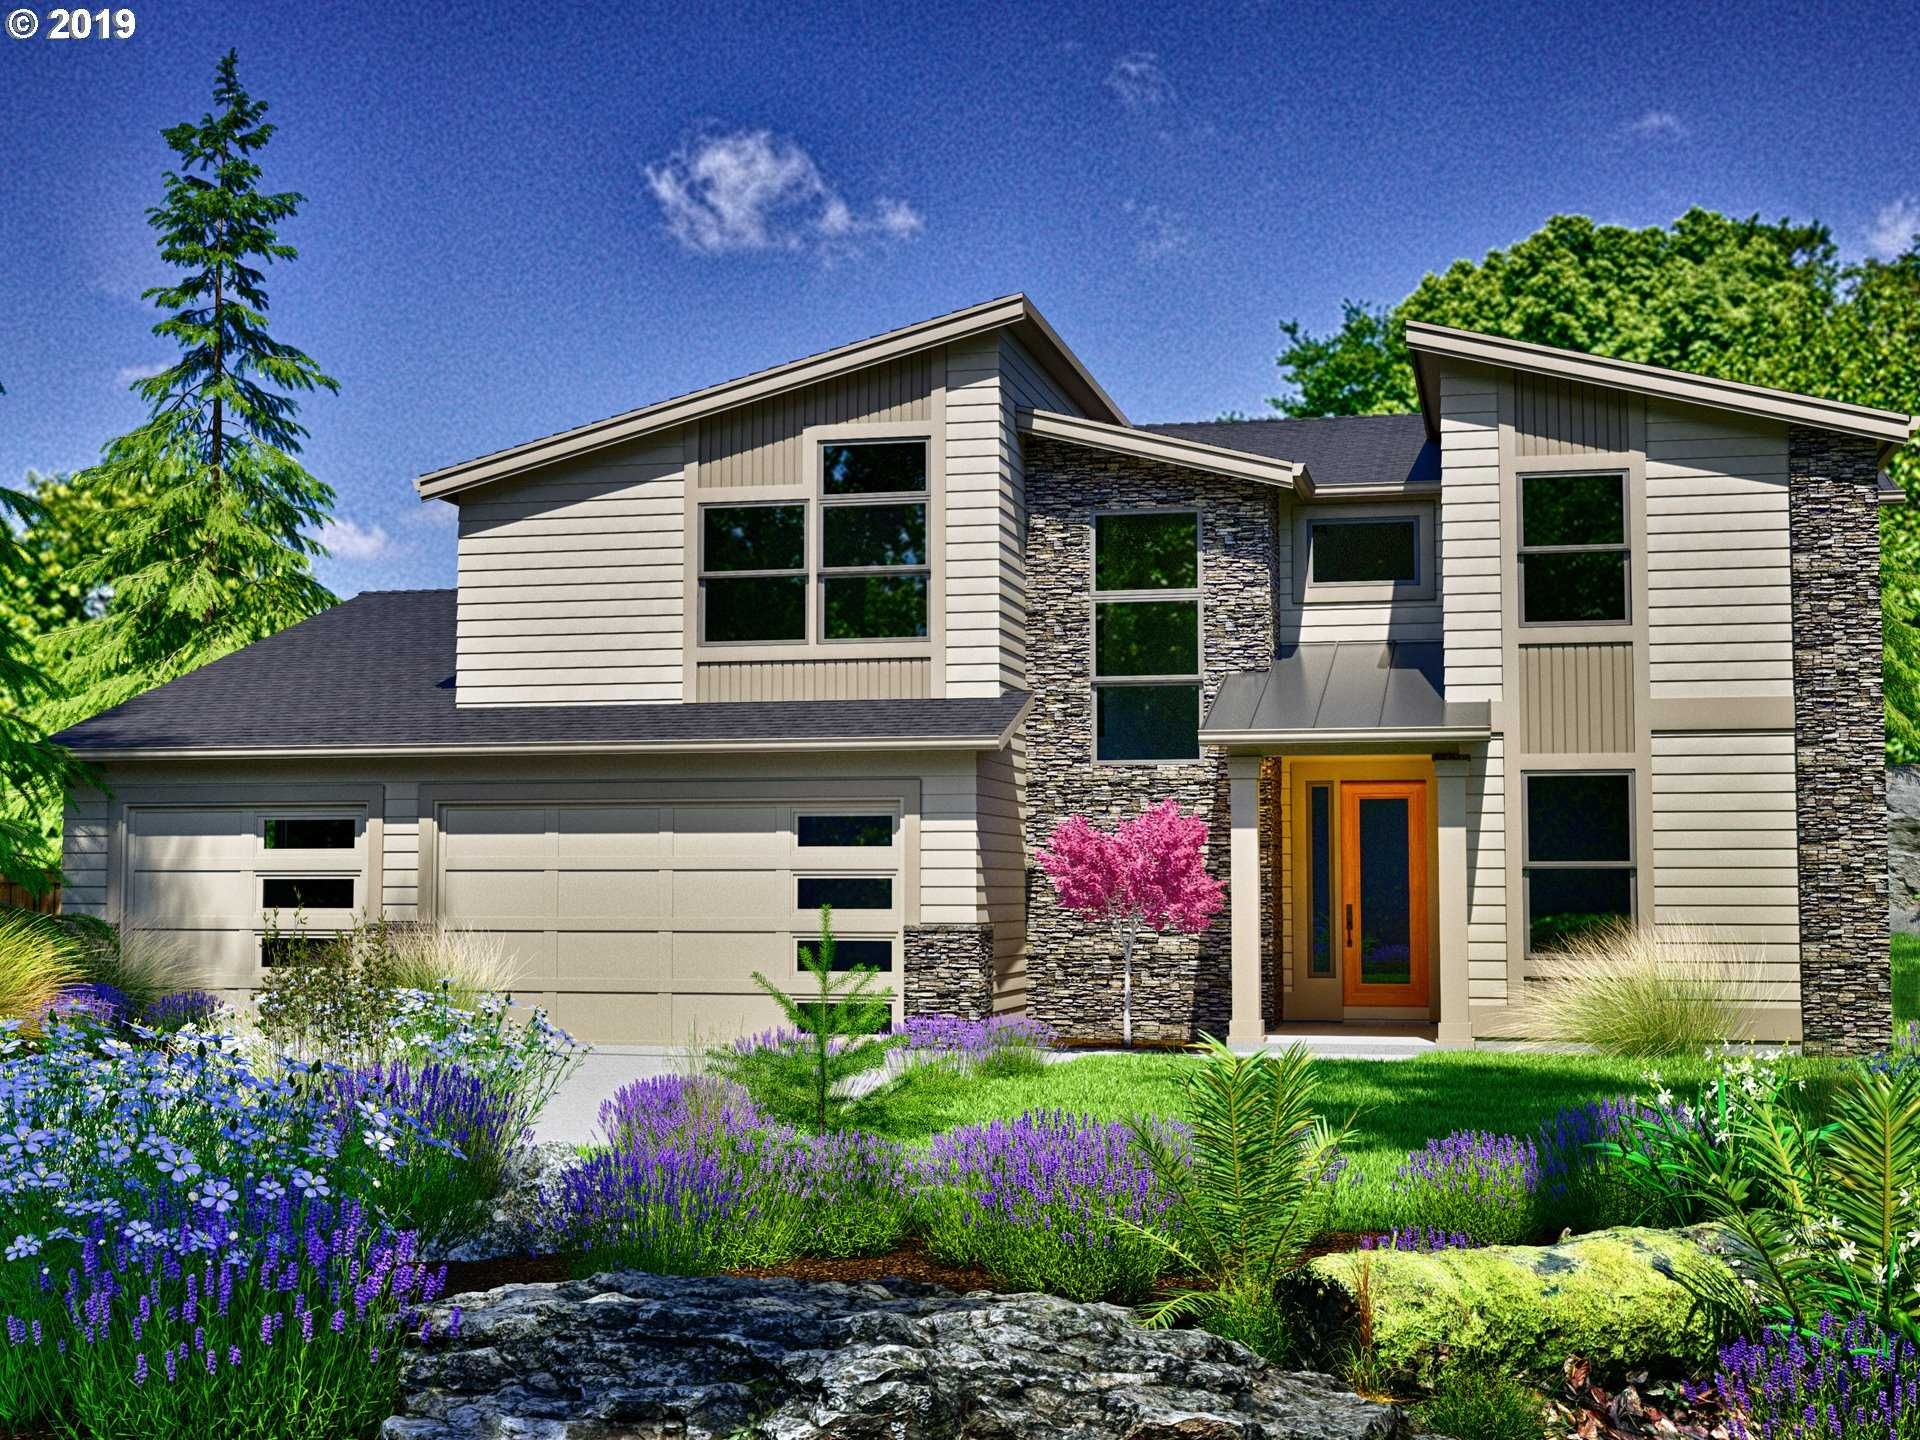 $910,000 - 5Br/4Ba -  for Sale in Rosedale Parks Vendage, Hillsboro